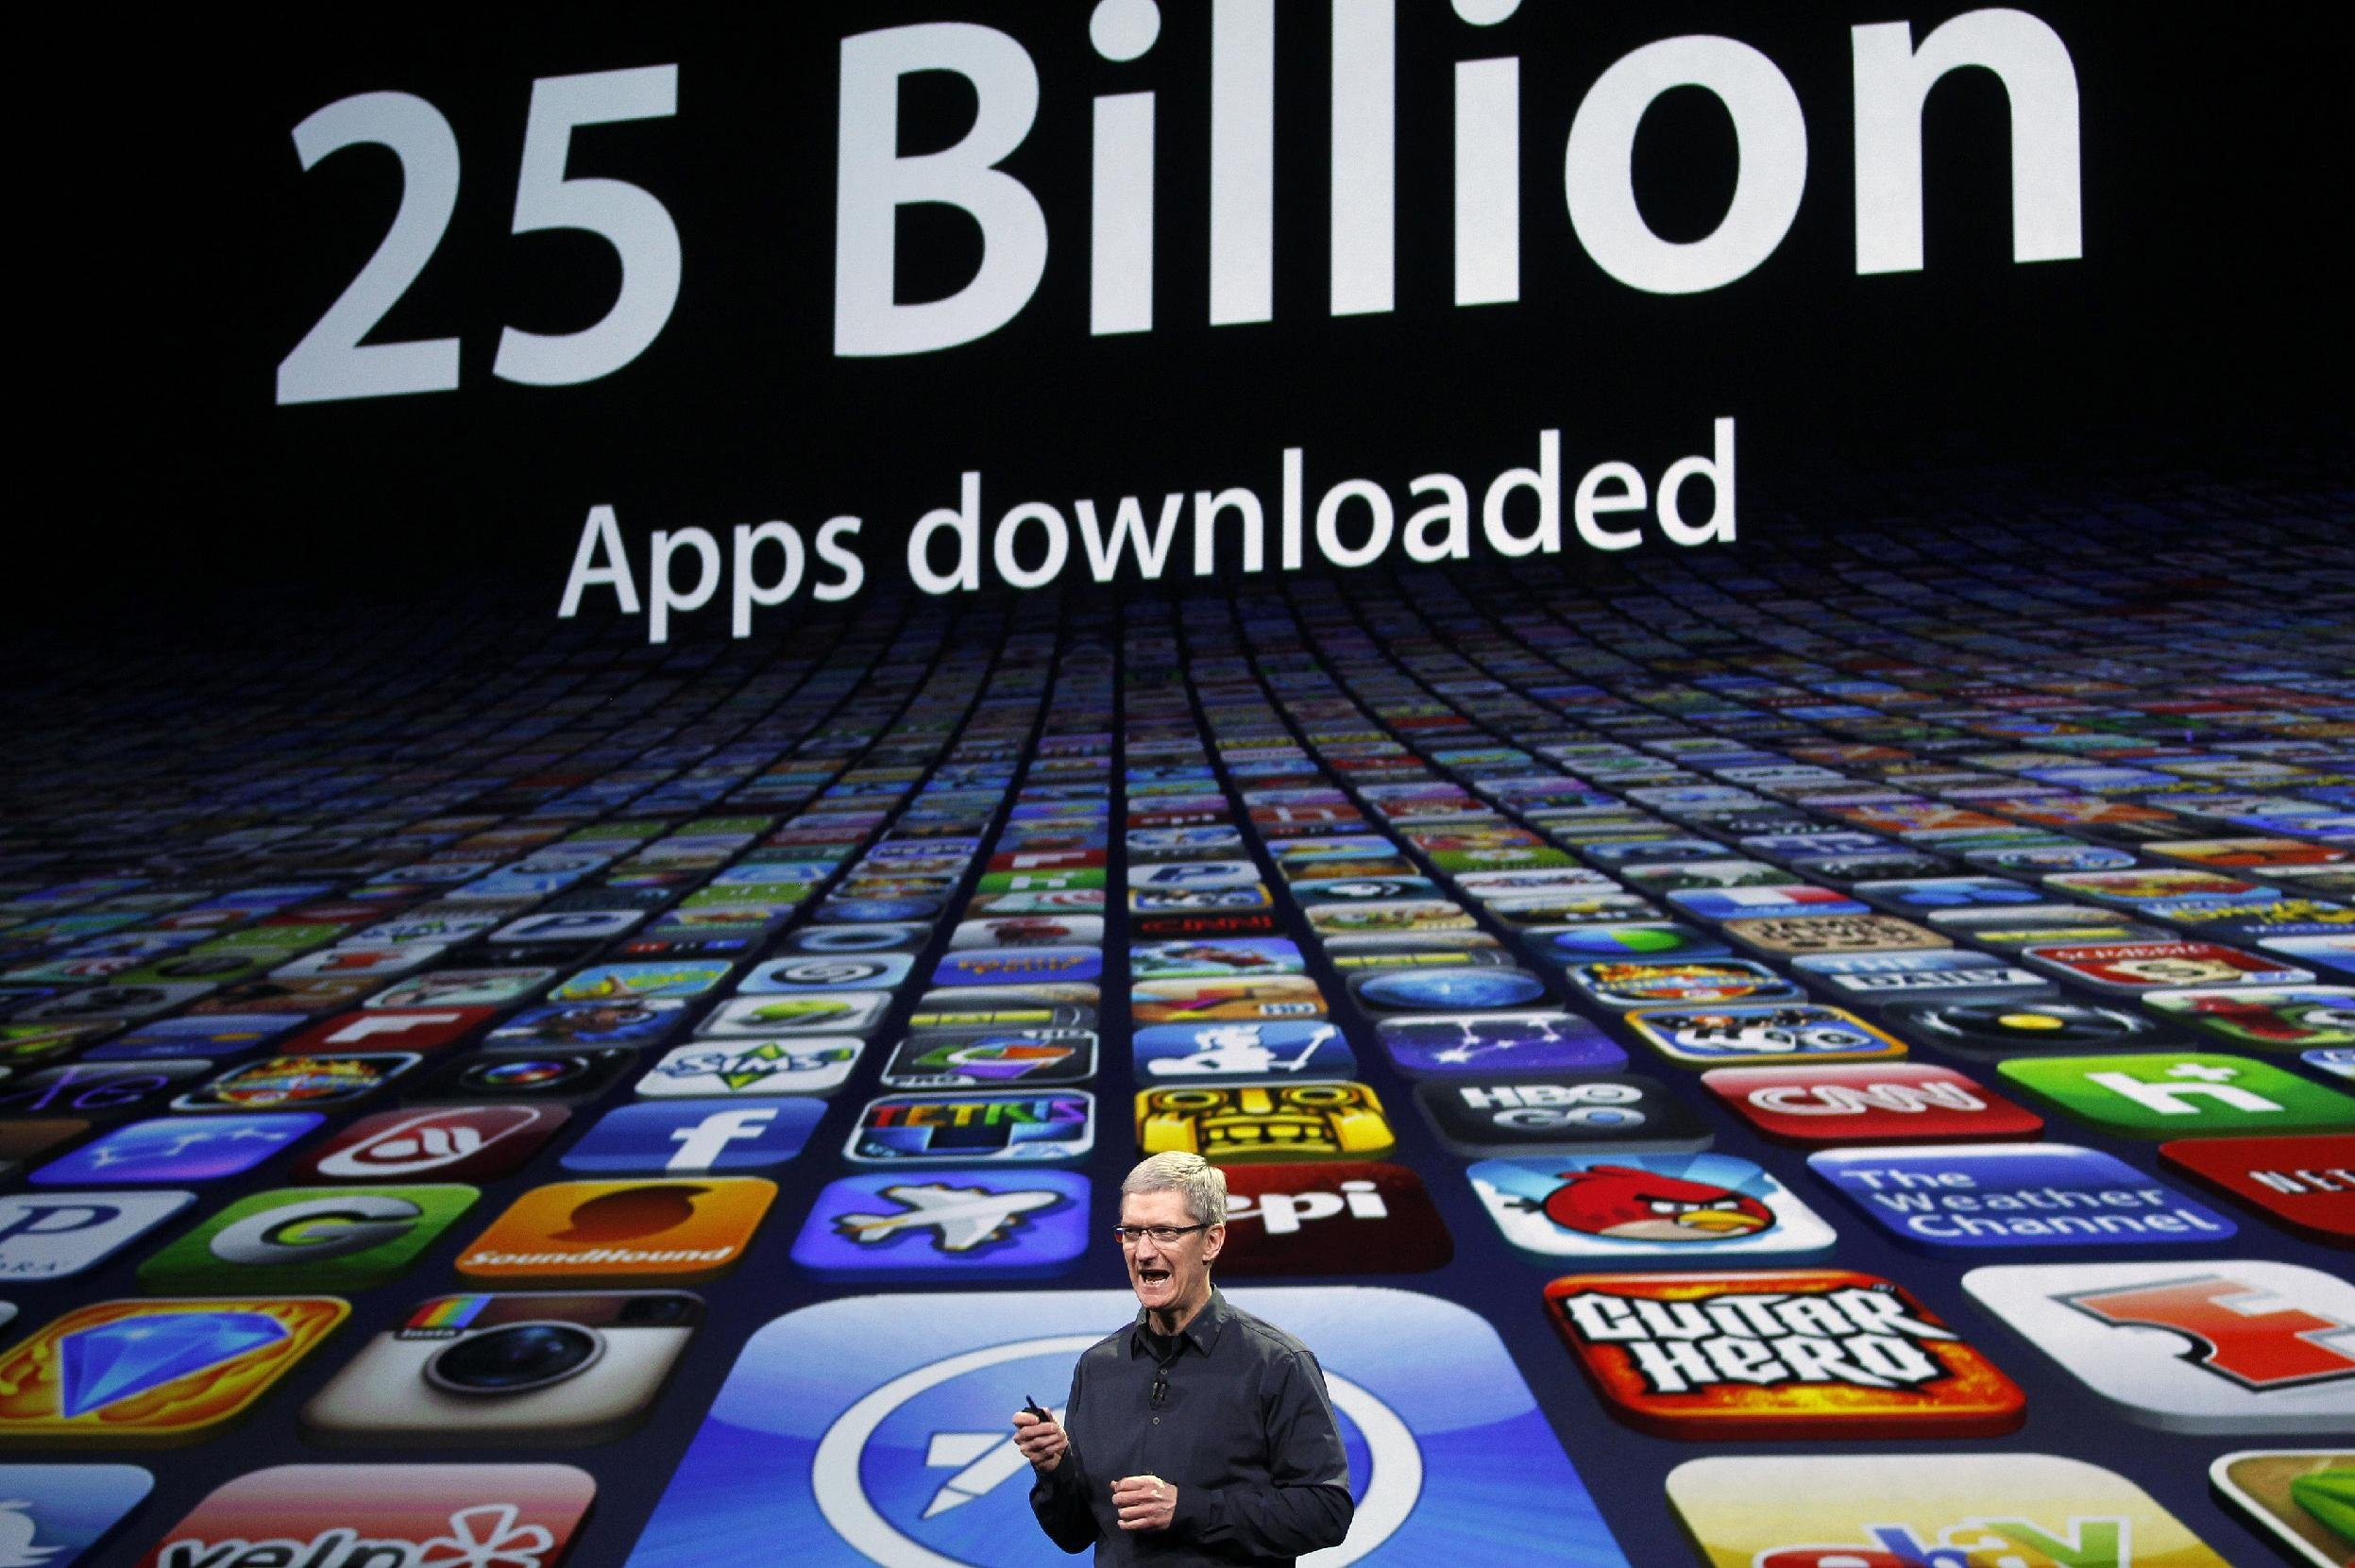 Apple CEO Tim Cook speaks about the number of Apps downloaded during an Apple event in San Francisco, California in this file photo from March 7, 2012. (Reuters)